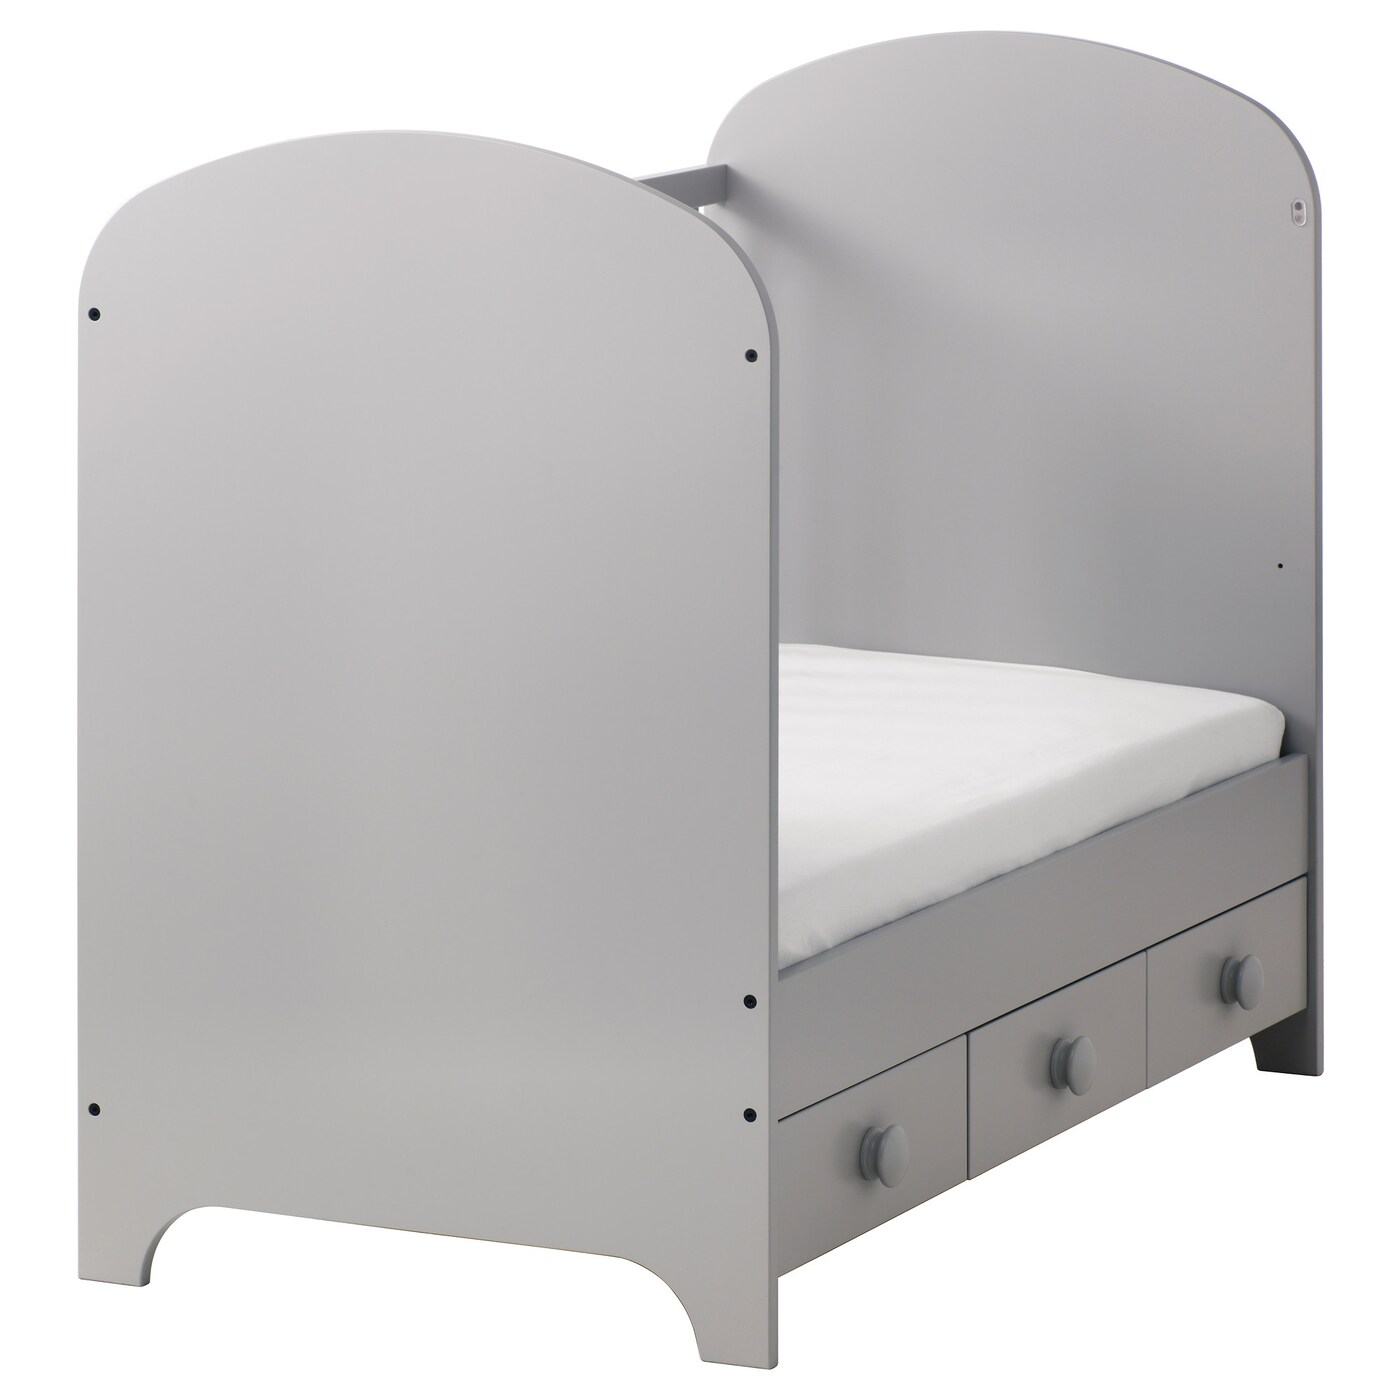 IKEA GONATT cot The cot base can be placed at two different heights.